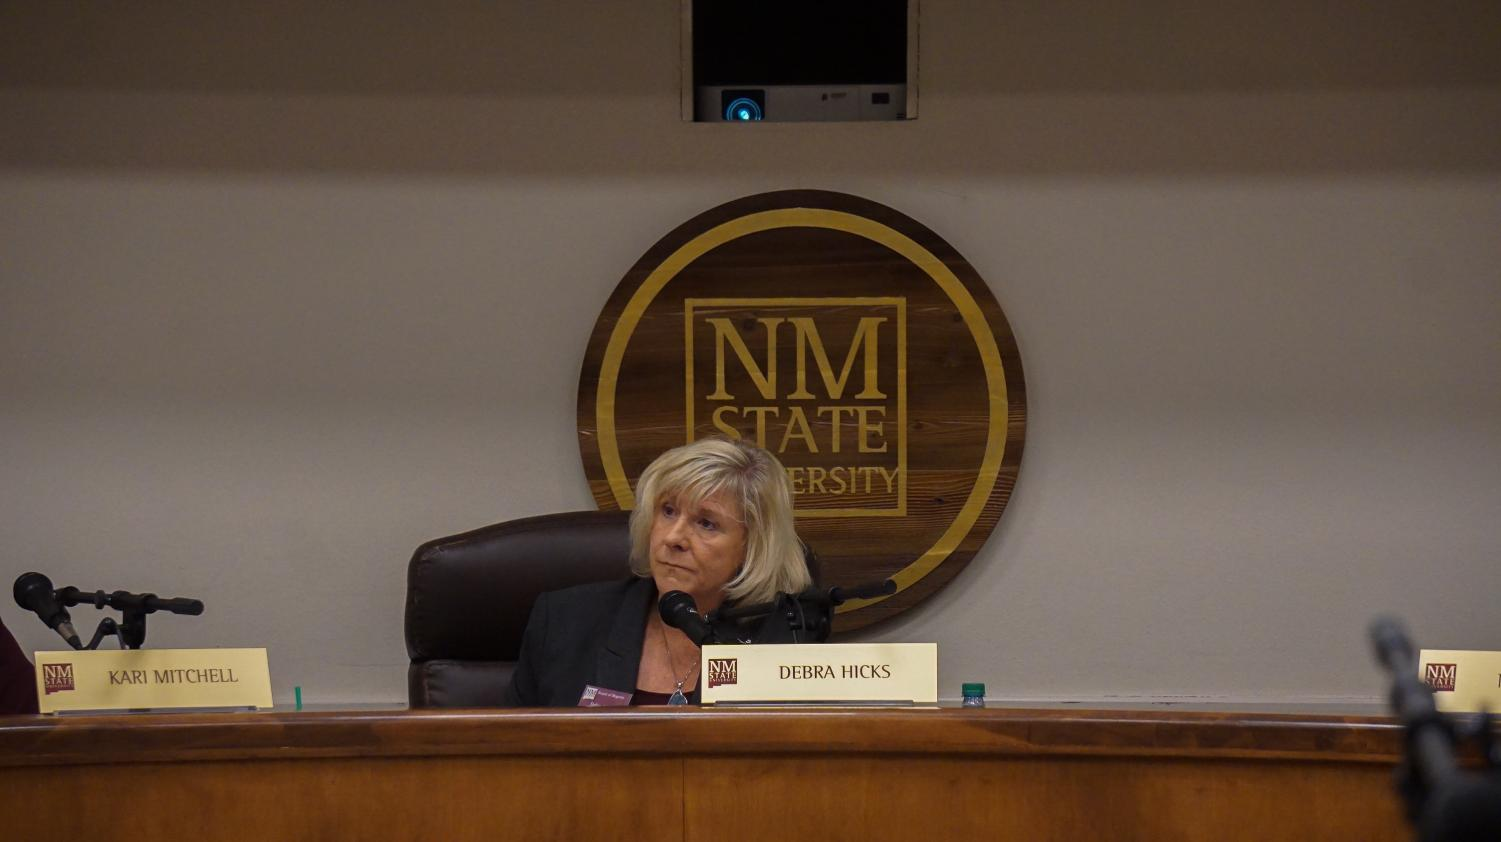 Madame Chair Debra Hicks during the Board of Regents meeting that took place on November 8.